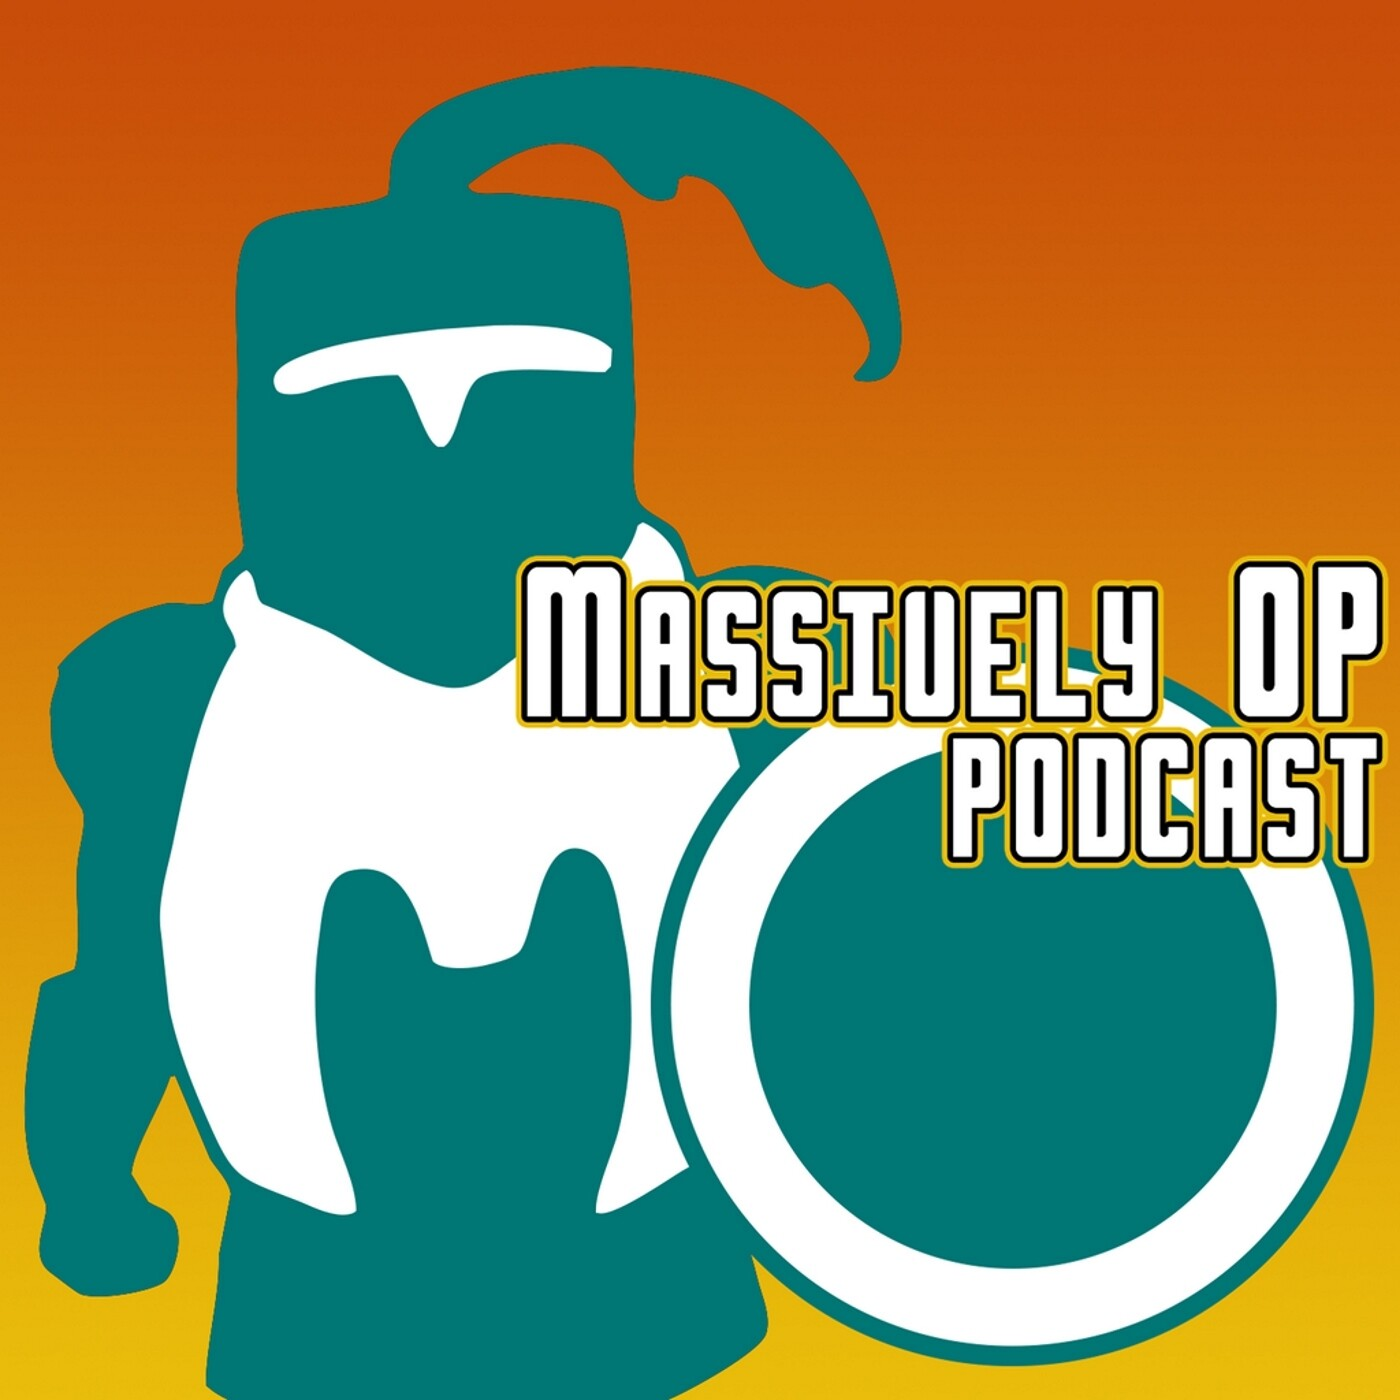 Massively OP Podcast Episode 293: Passing the Torchlight